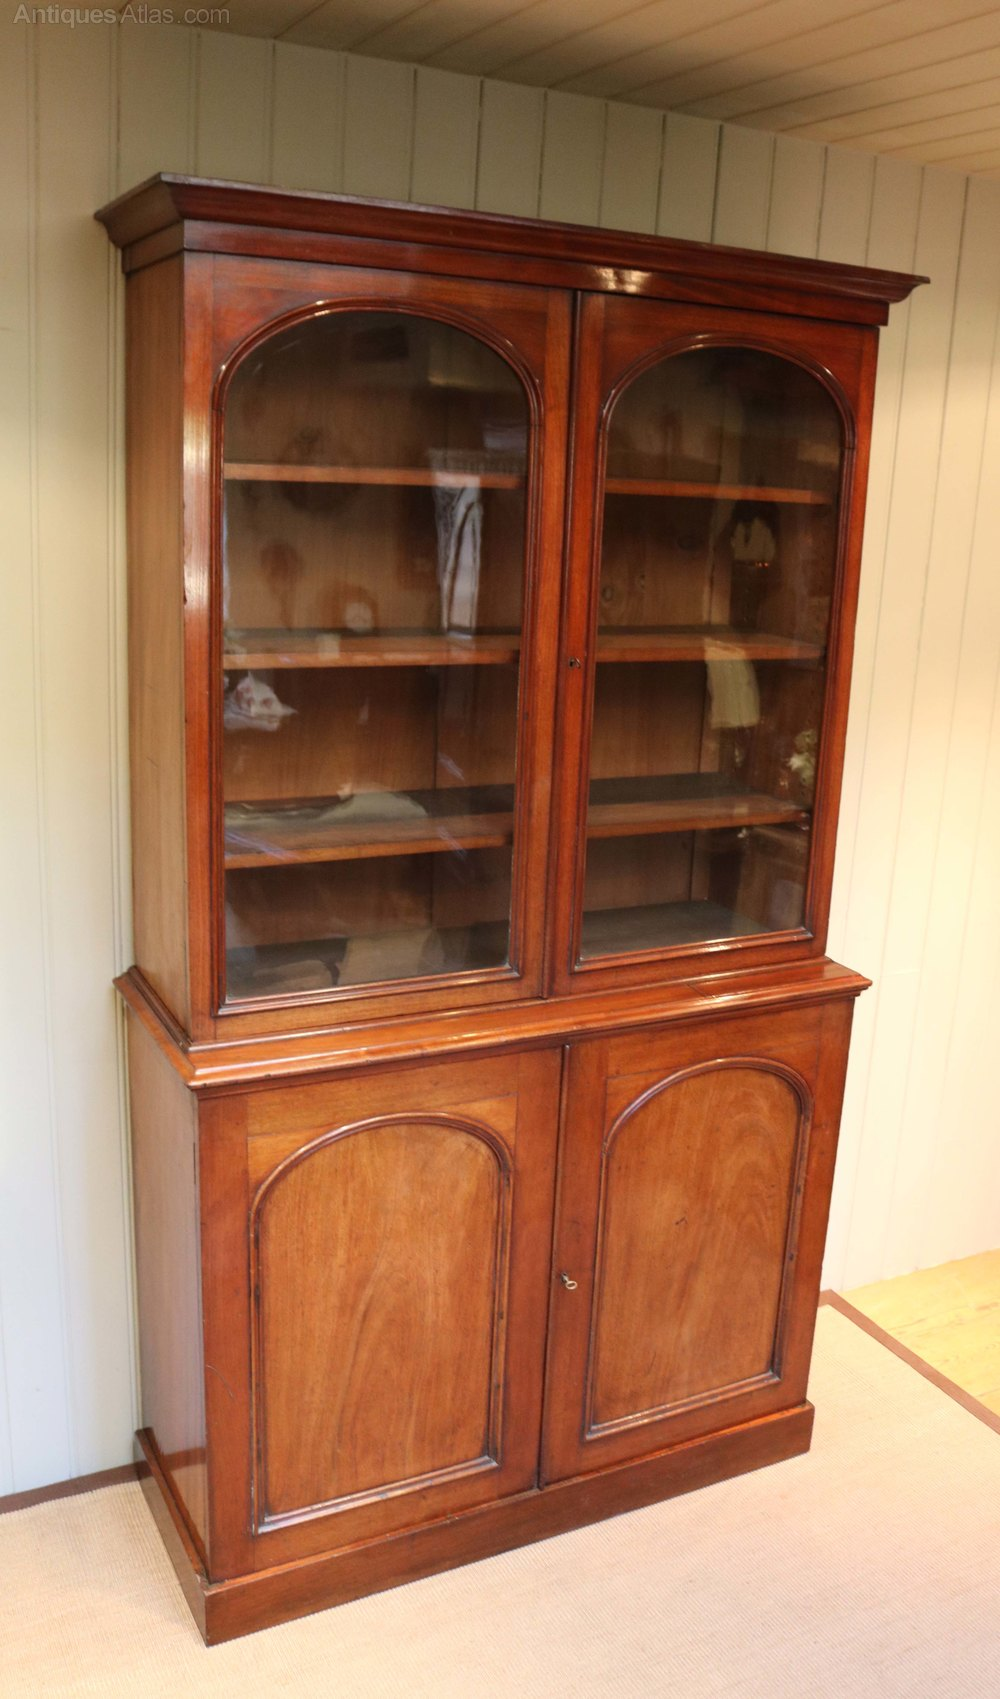 Mahogany cabinet bookcase antiques atlas for Kitchen cabinets 50cm wide